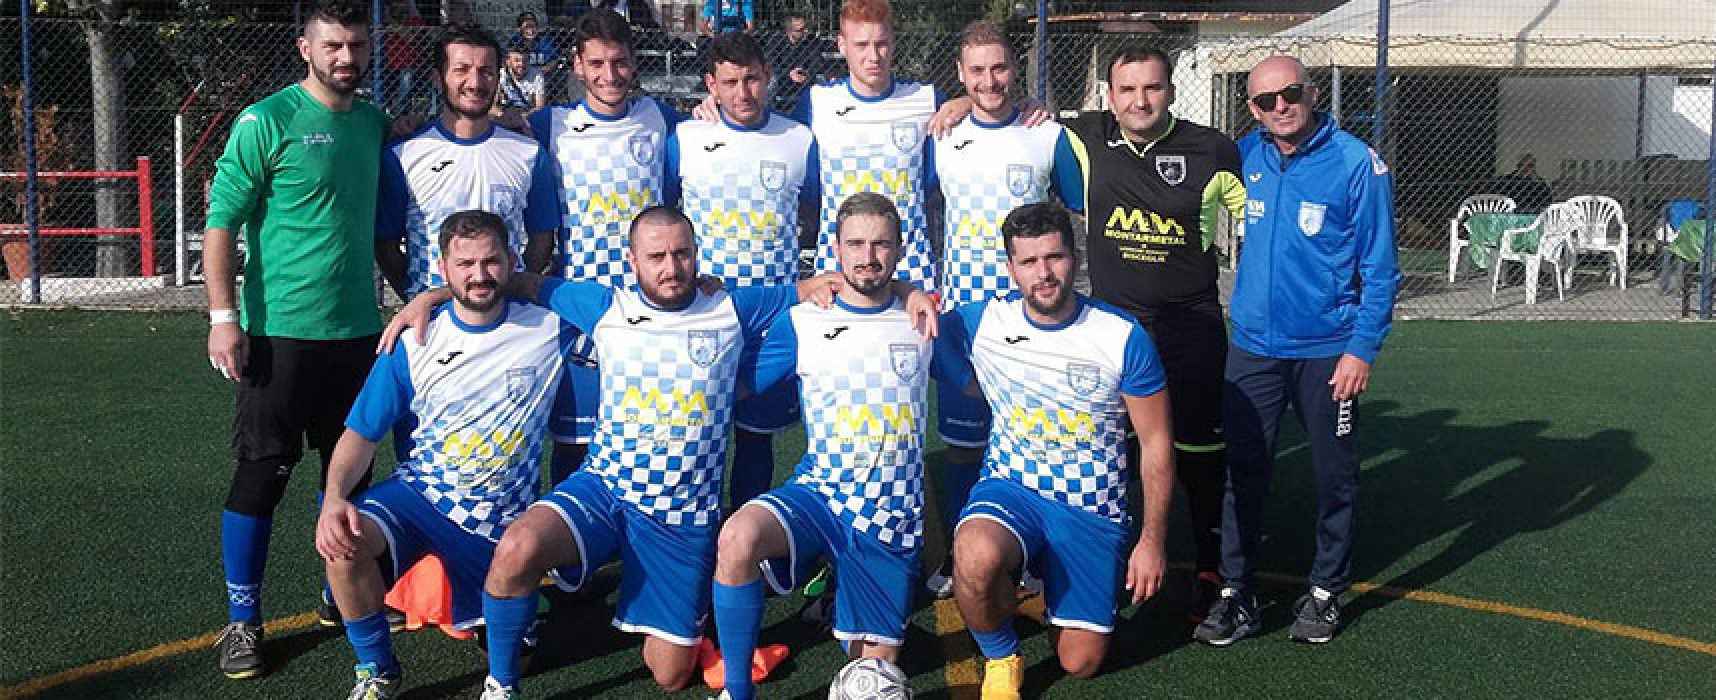 Futsal C2: Nettuno ai playoff, Futbol Cinco cade a Monte sant'Angelo / CLASSIFICA